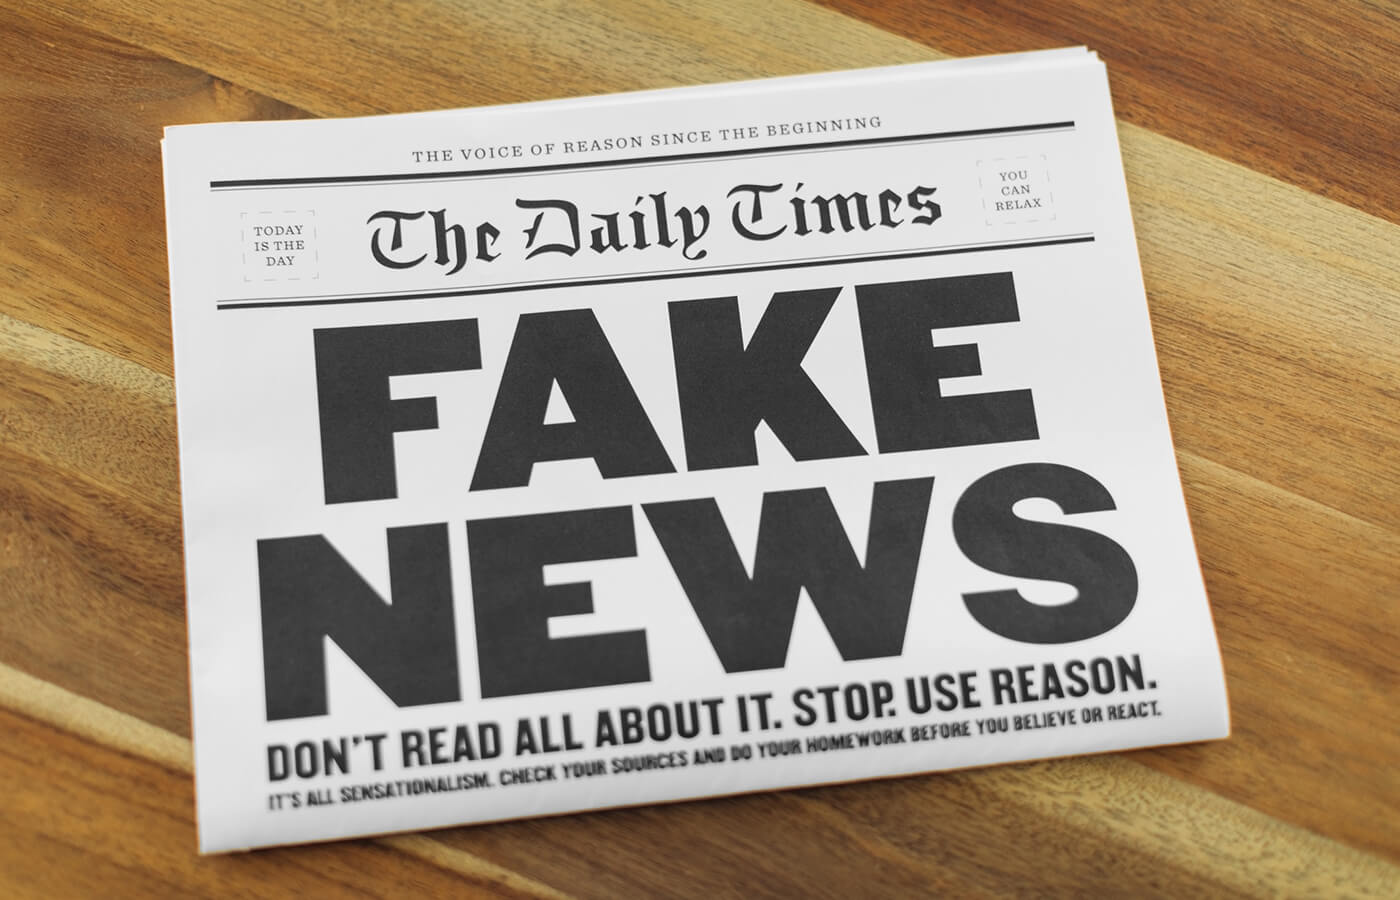 Fake News - 5 Real Examples (video)